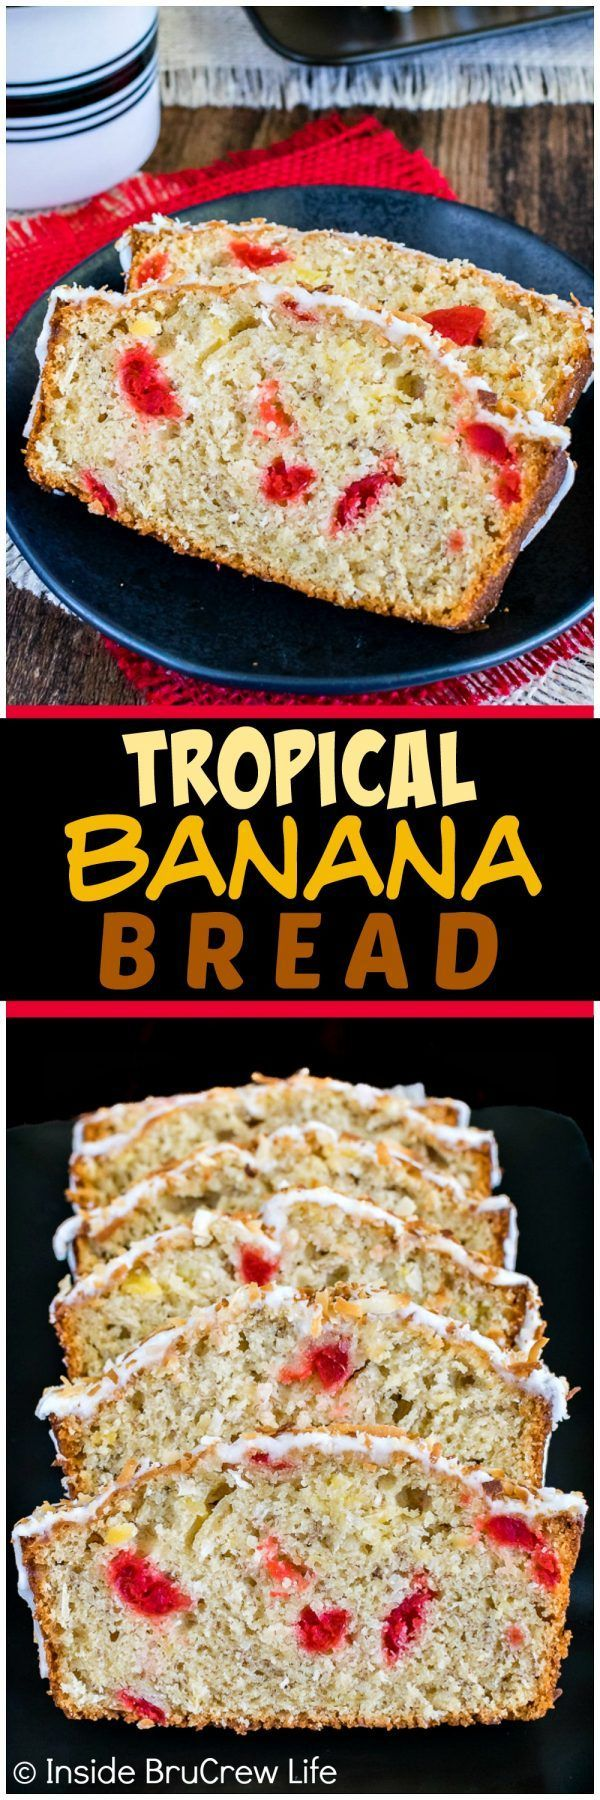 Tropical Banana Bread - cherries, coconut, and pineapple add a tropical flair to this easy sweet bread.  Great recipe to use up the ripe bananas on your counter!